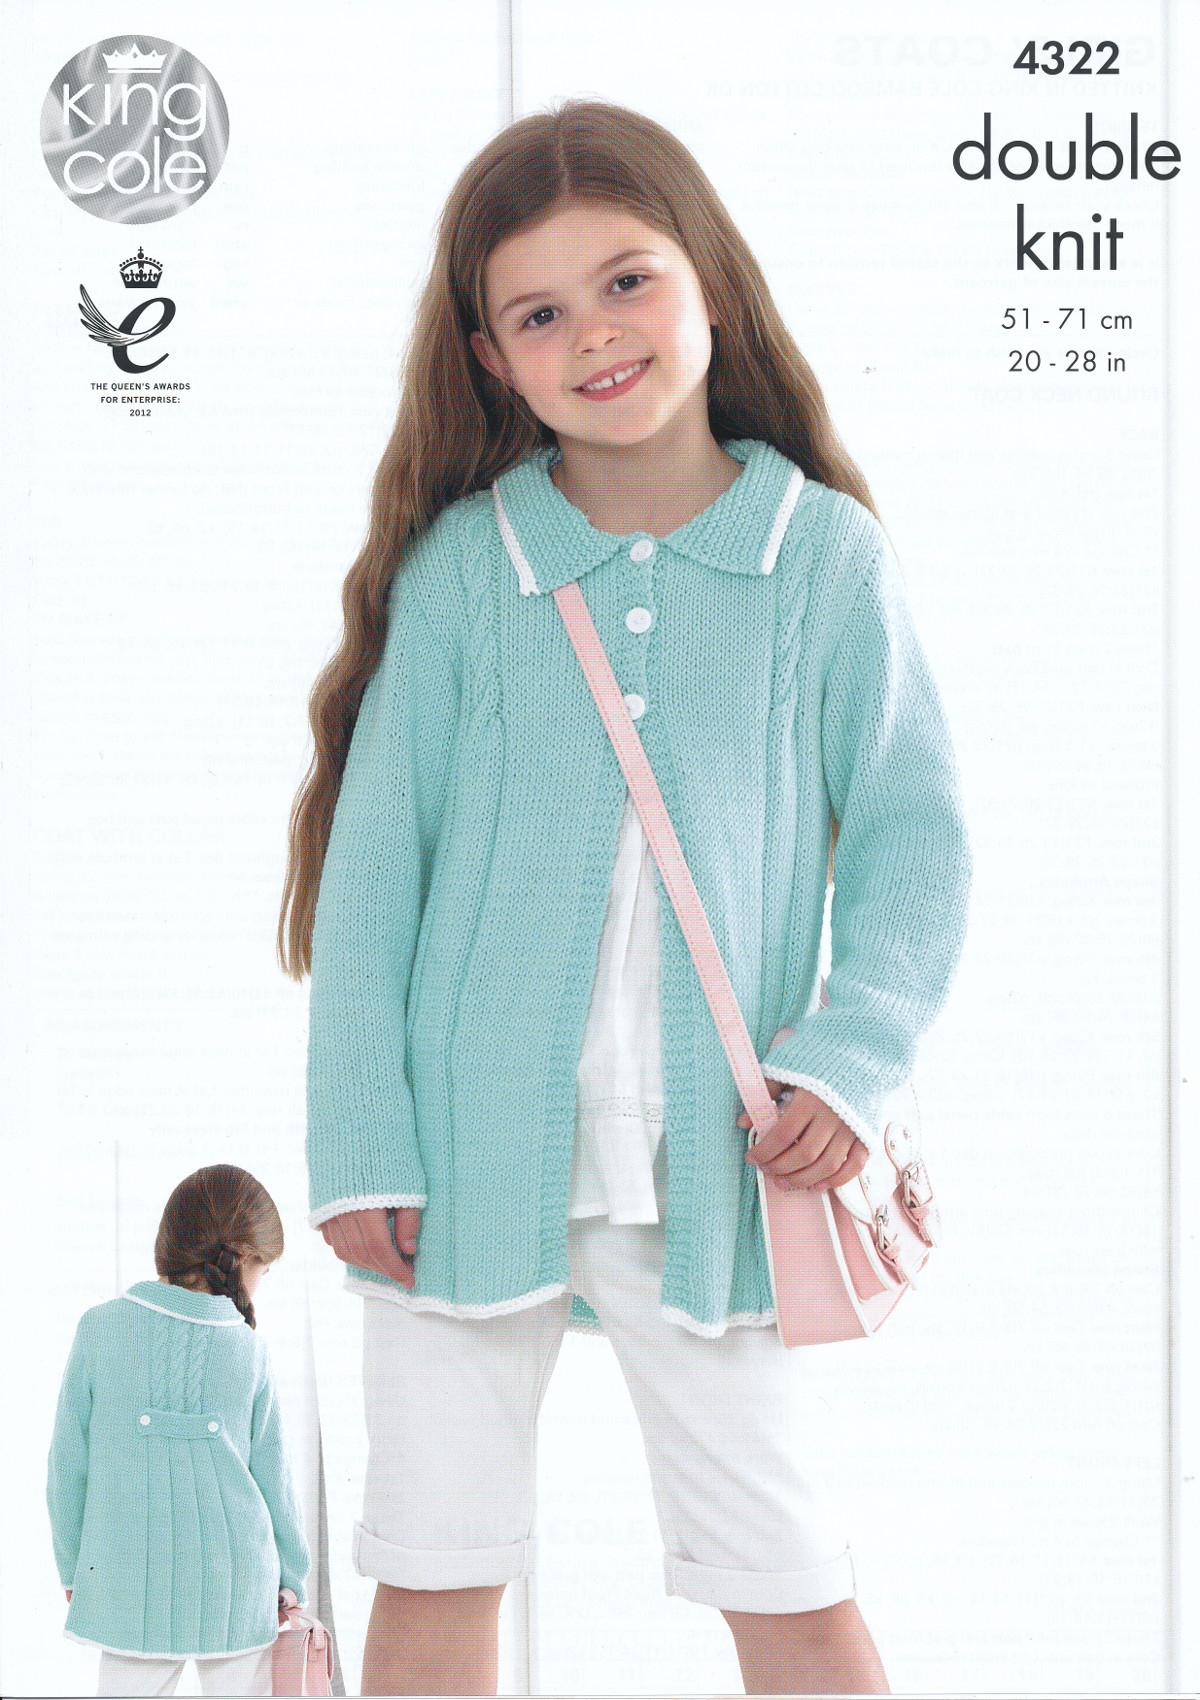 Knitting Patterns For King Cole Bamboo Cotton : Childrens Double Knitting Pattern King Cole Girls Coats Bamboo Cotton DK 4322...